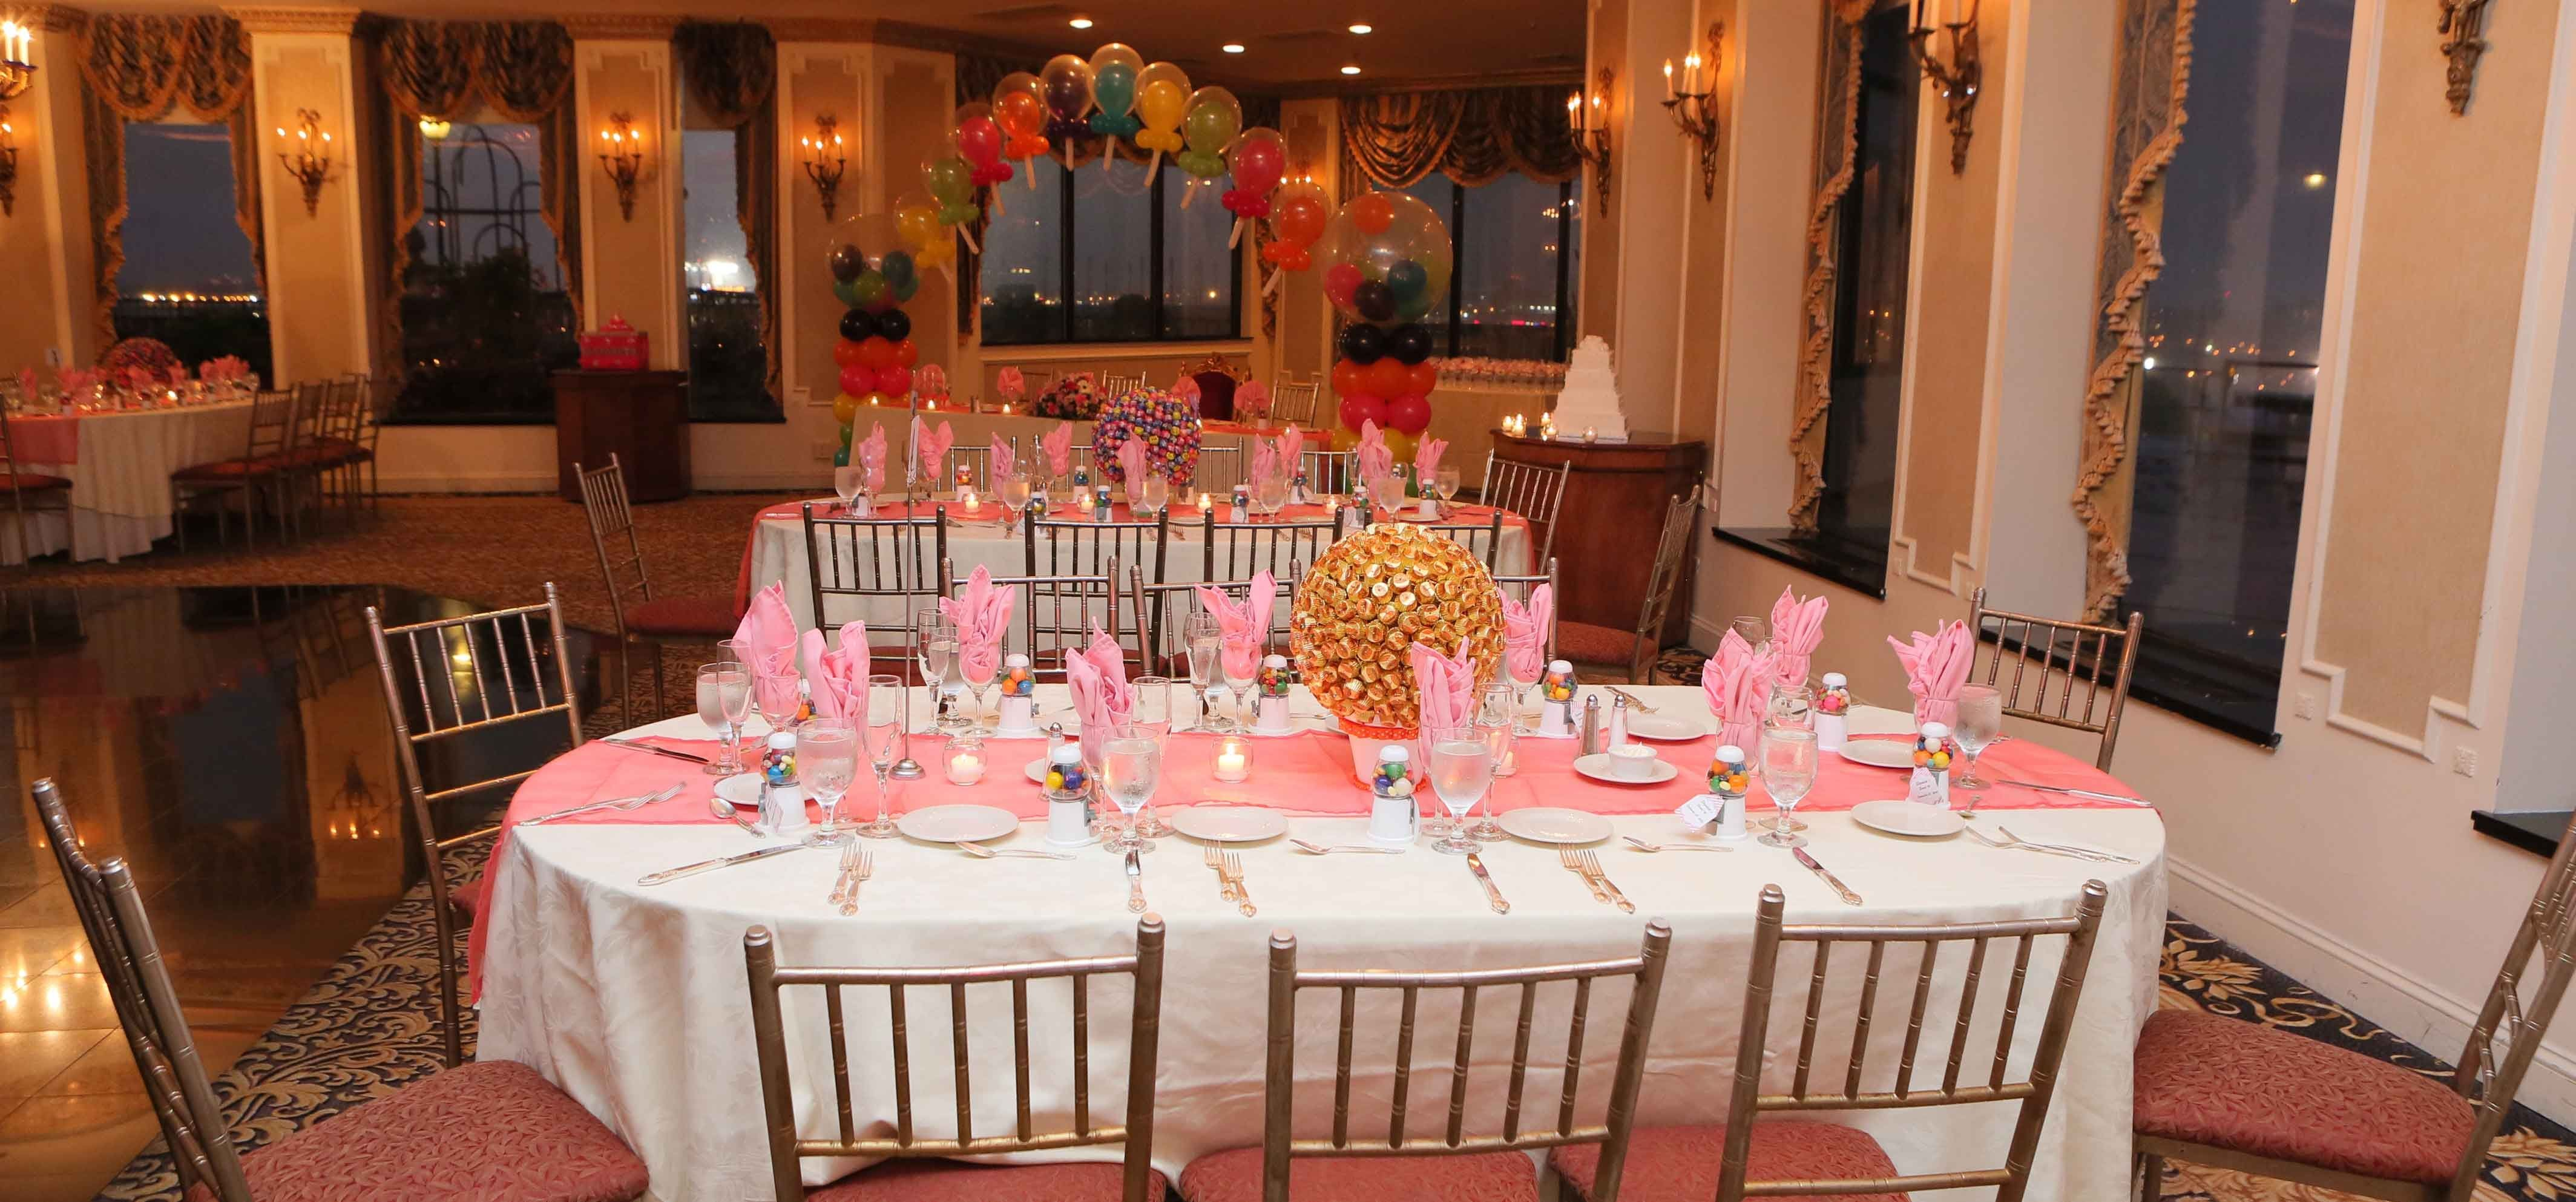 Hall Rentals For Baby Shower Long Island Httpatwebryfo